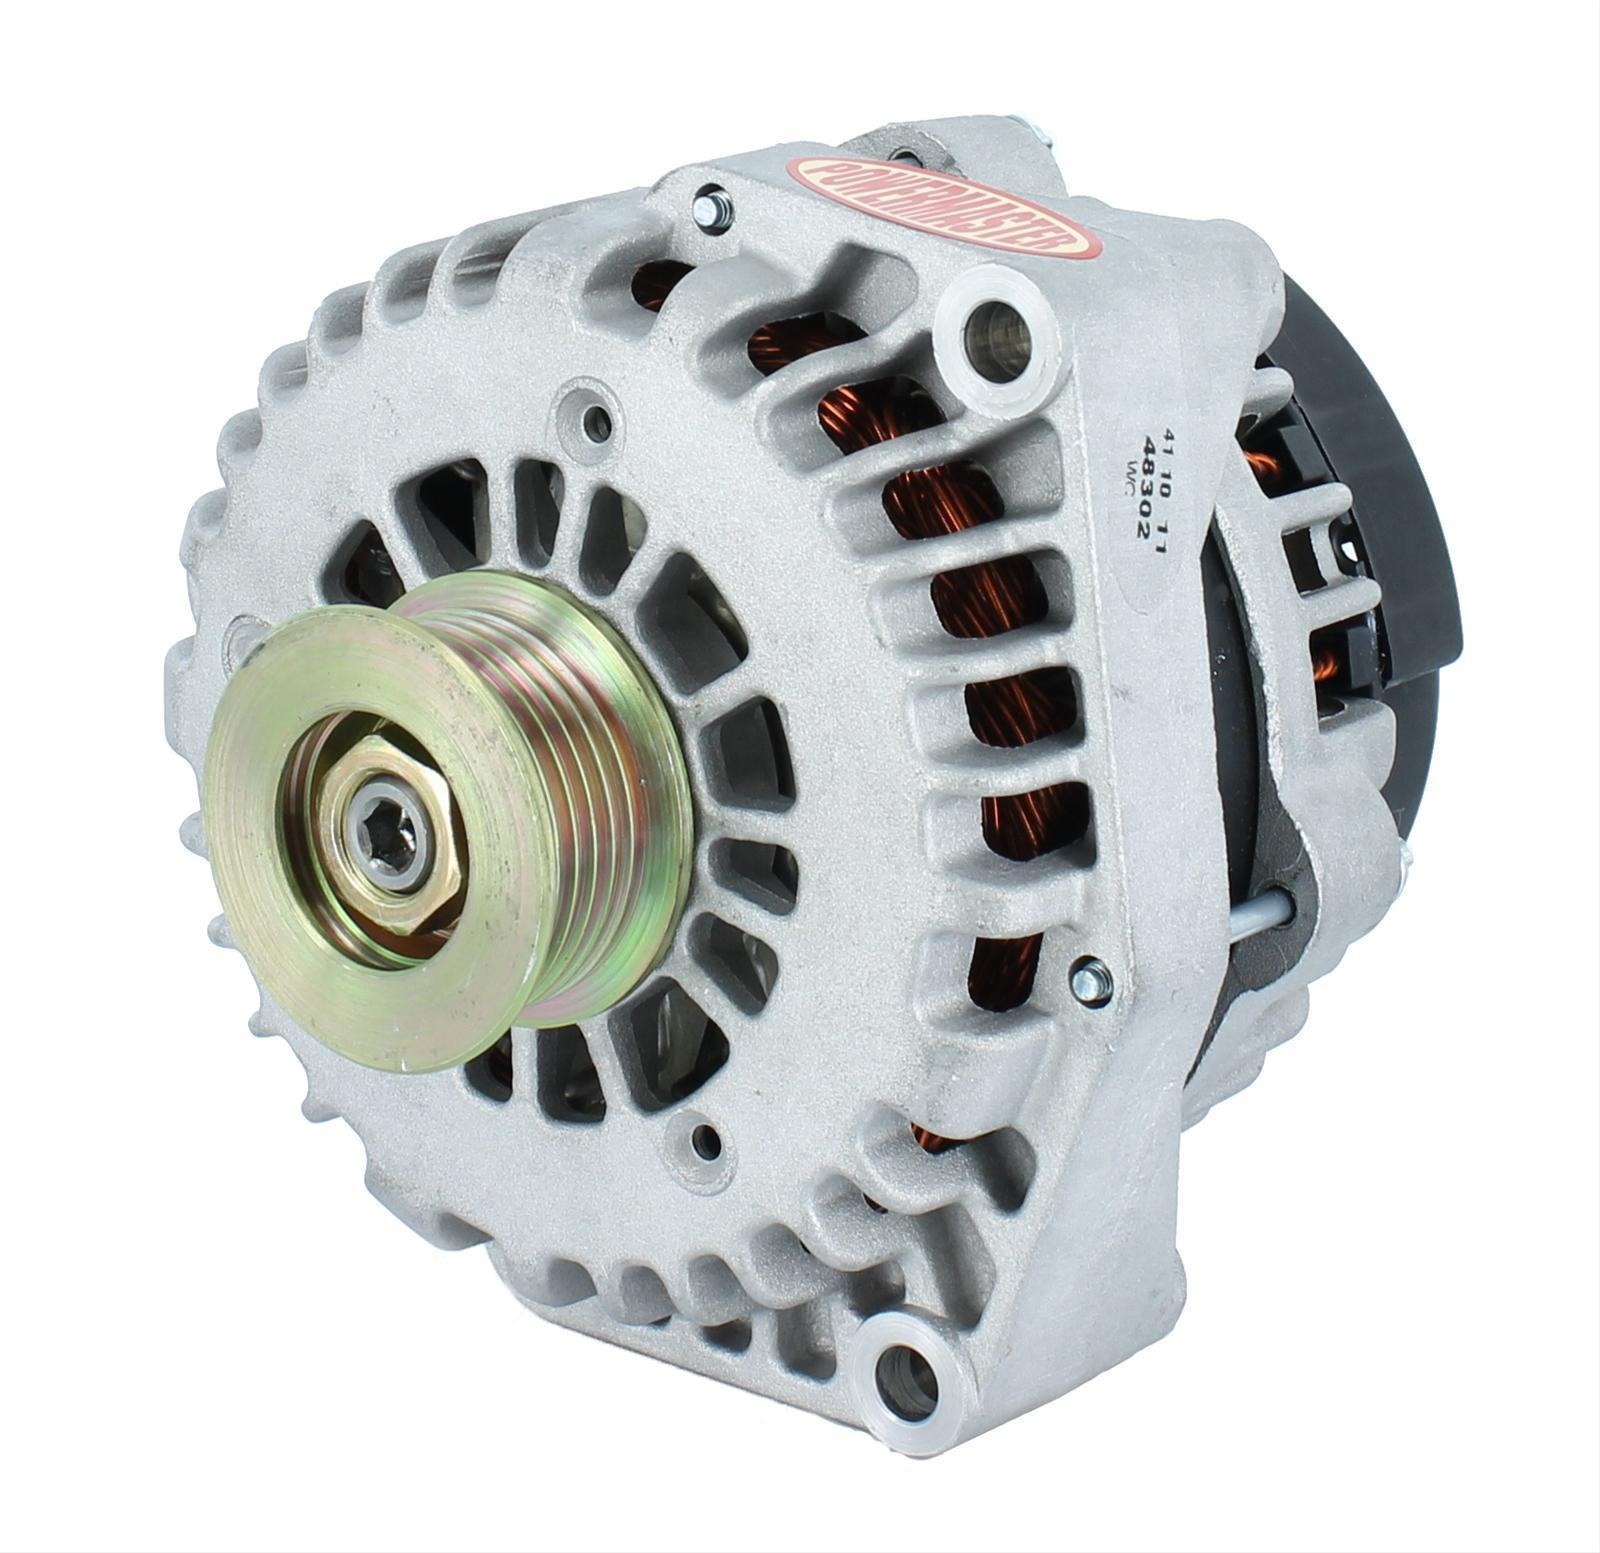 hight resolution of powermaster gm style ad alternator pm48302 natural 215 amp 2 pin 6 rib pulley